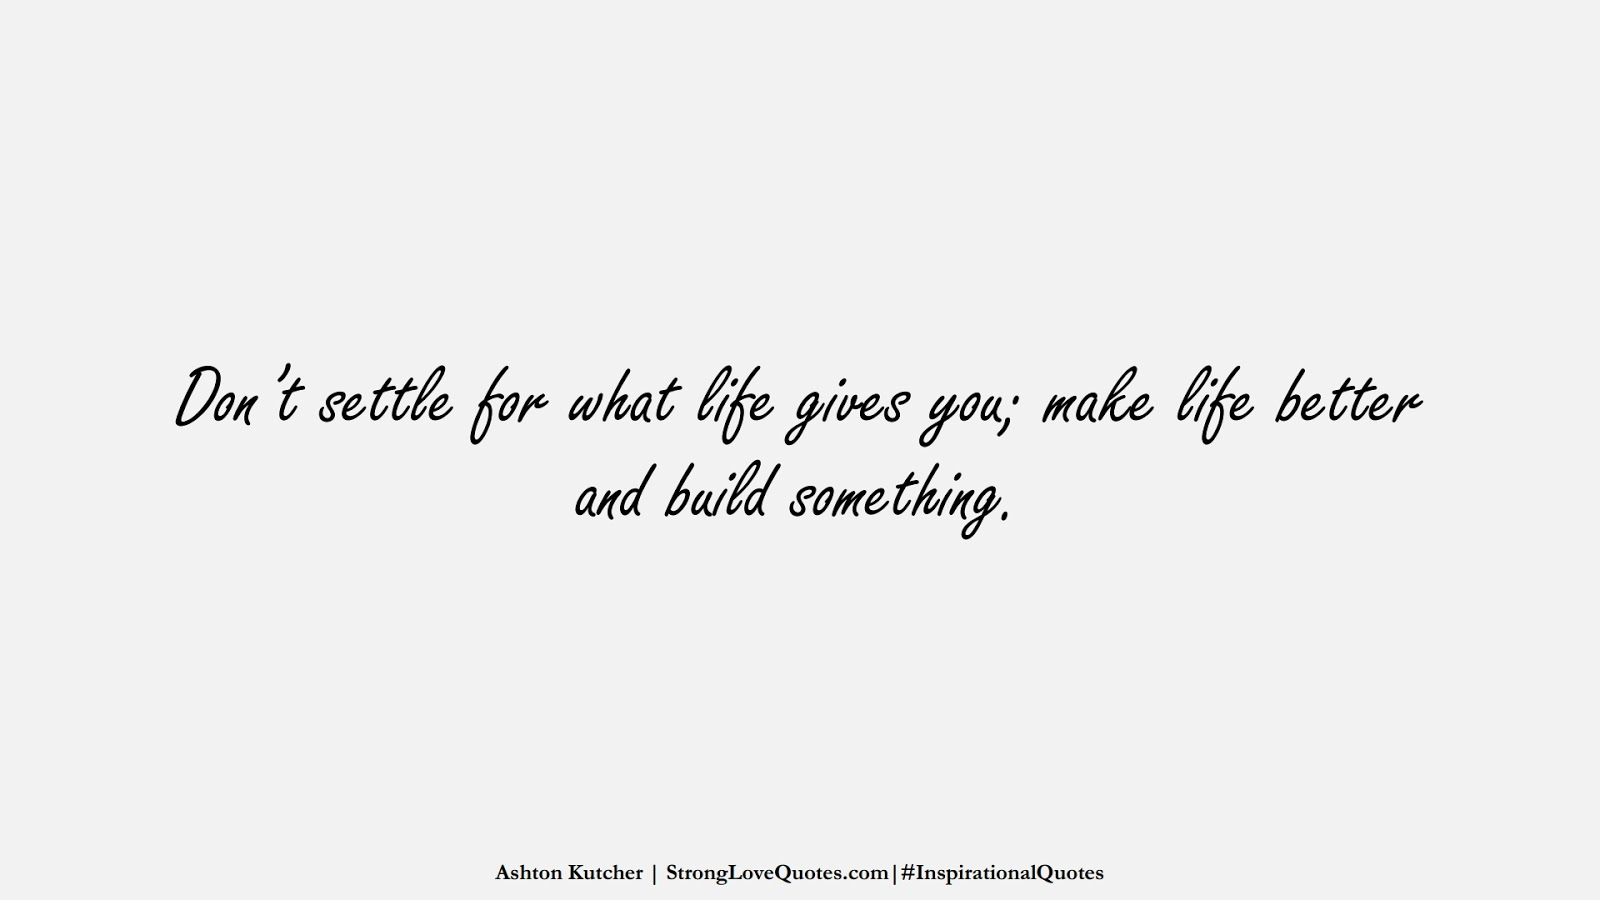 Don't settle for what life gives you; make life better and build something. (Ashton Kutcher);  #InspirationalQuotes